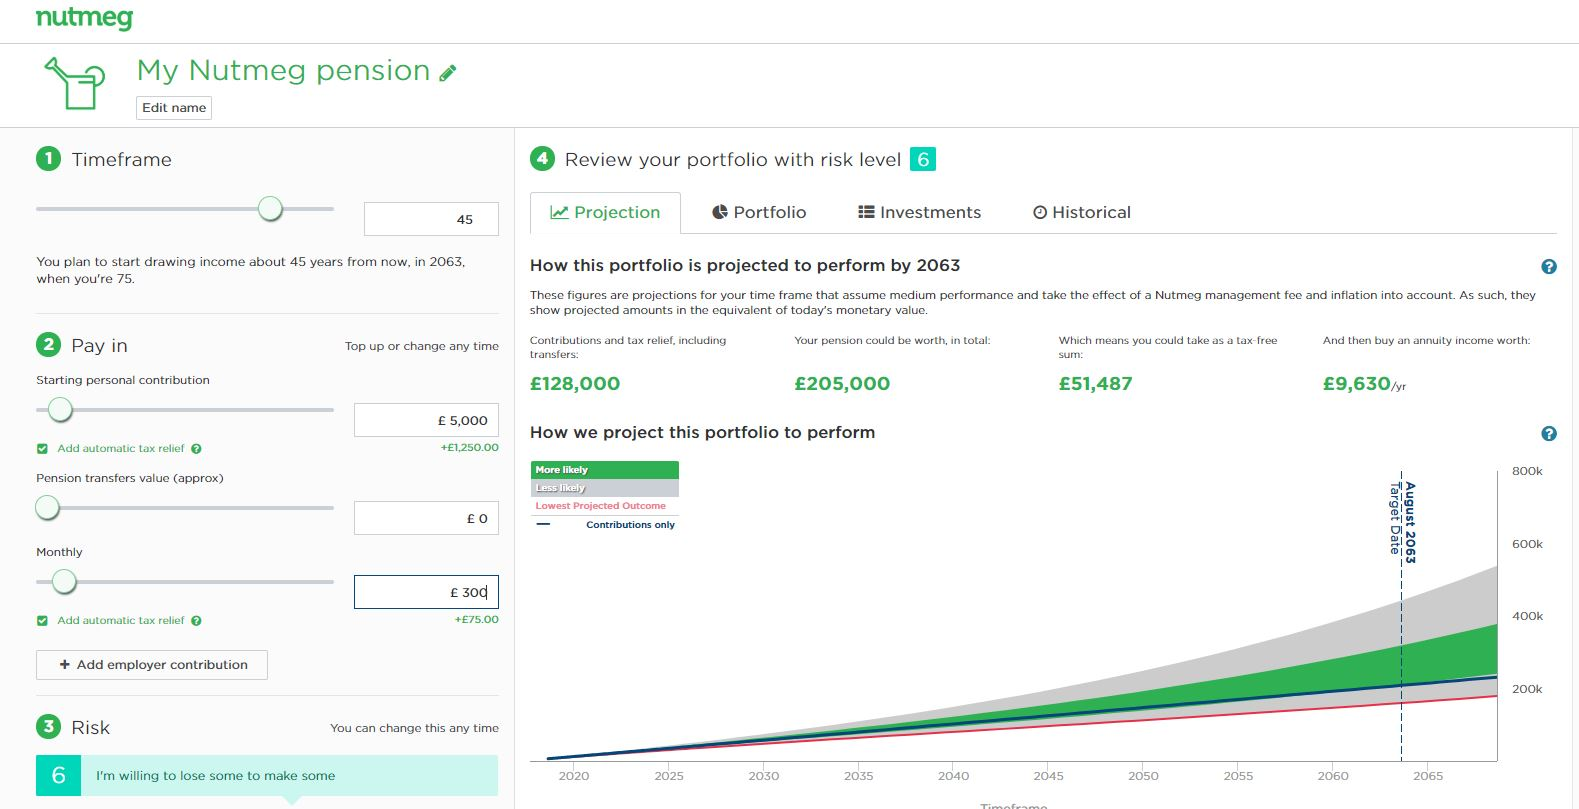 nutmeg pension projection